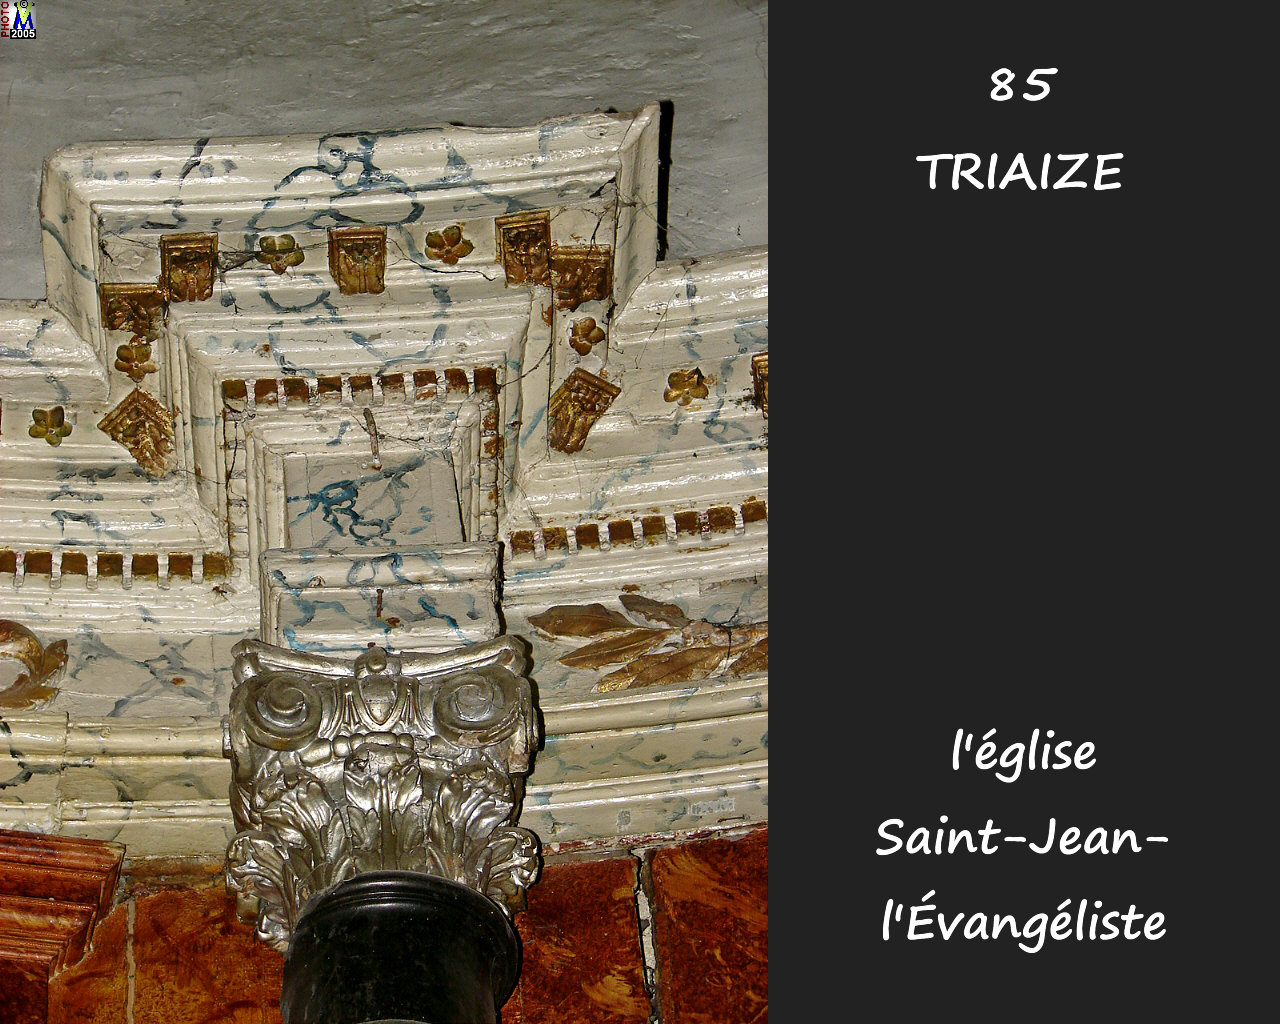 85TRIAIZE_eglise_216.jpg